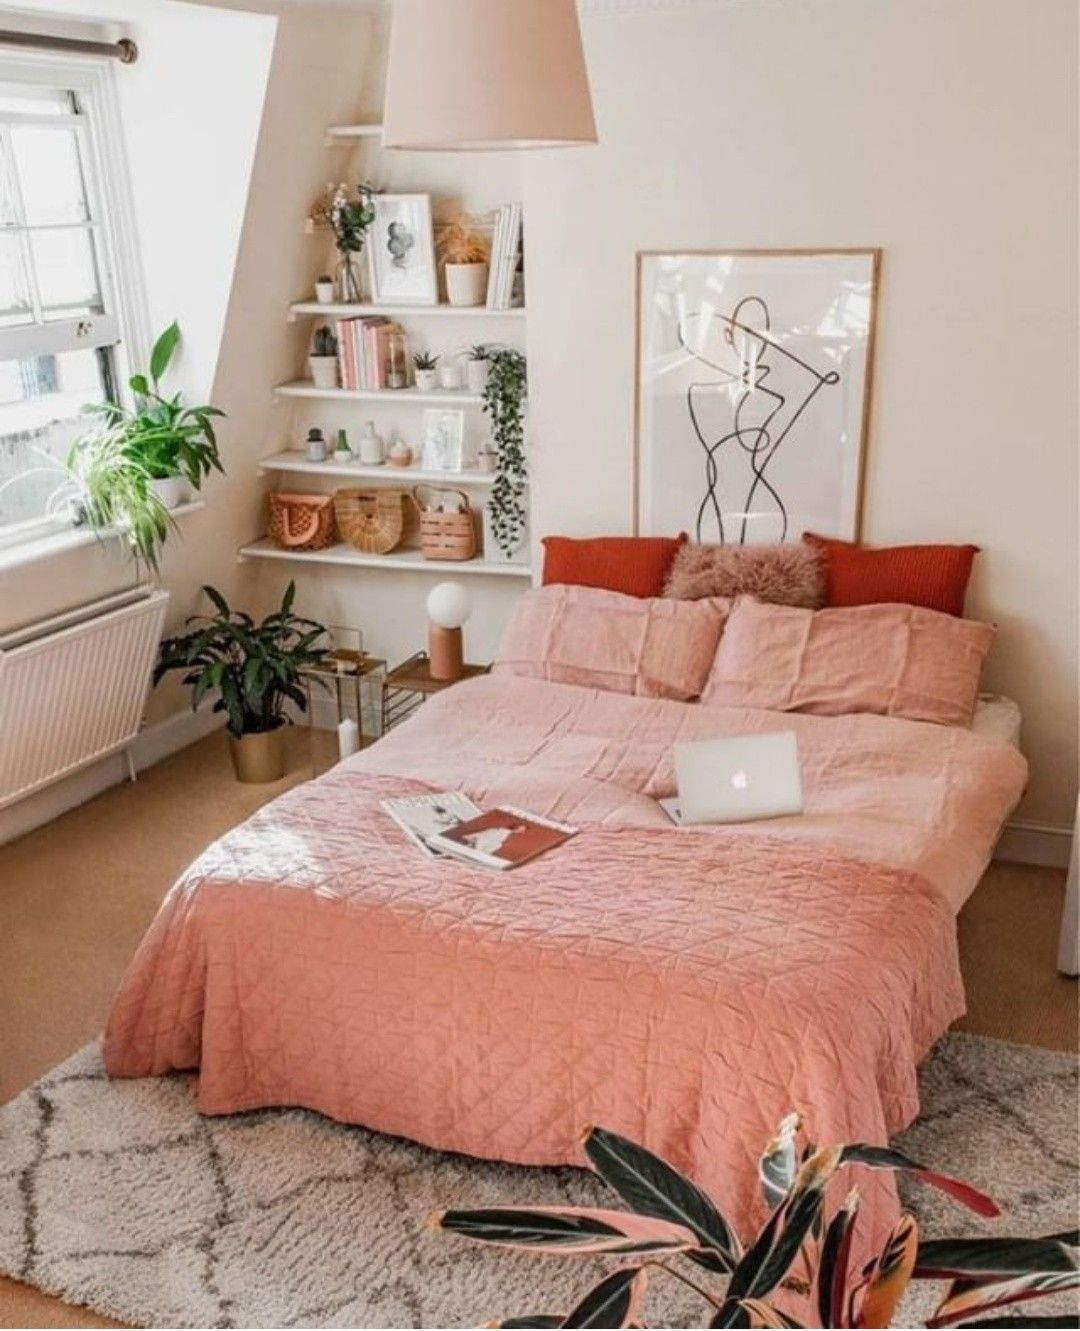 38 Small Yet Super Cozy Living Room Designs: Pin By Sofiaorozco02 On Room Ideas